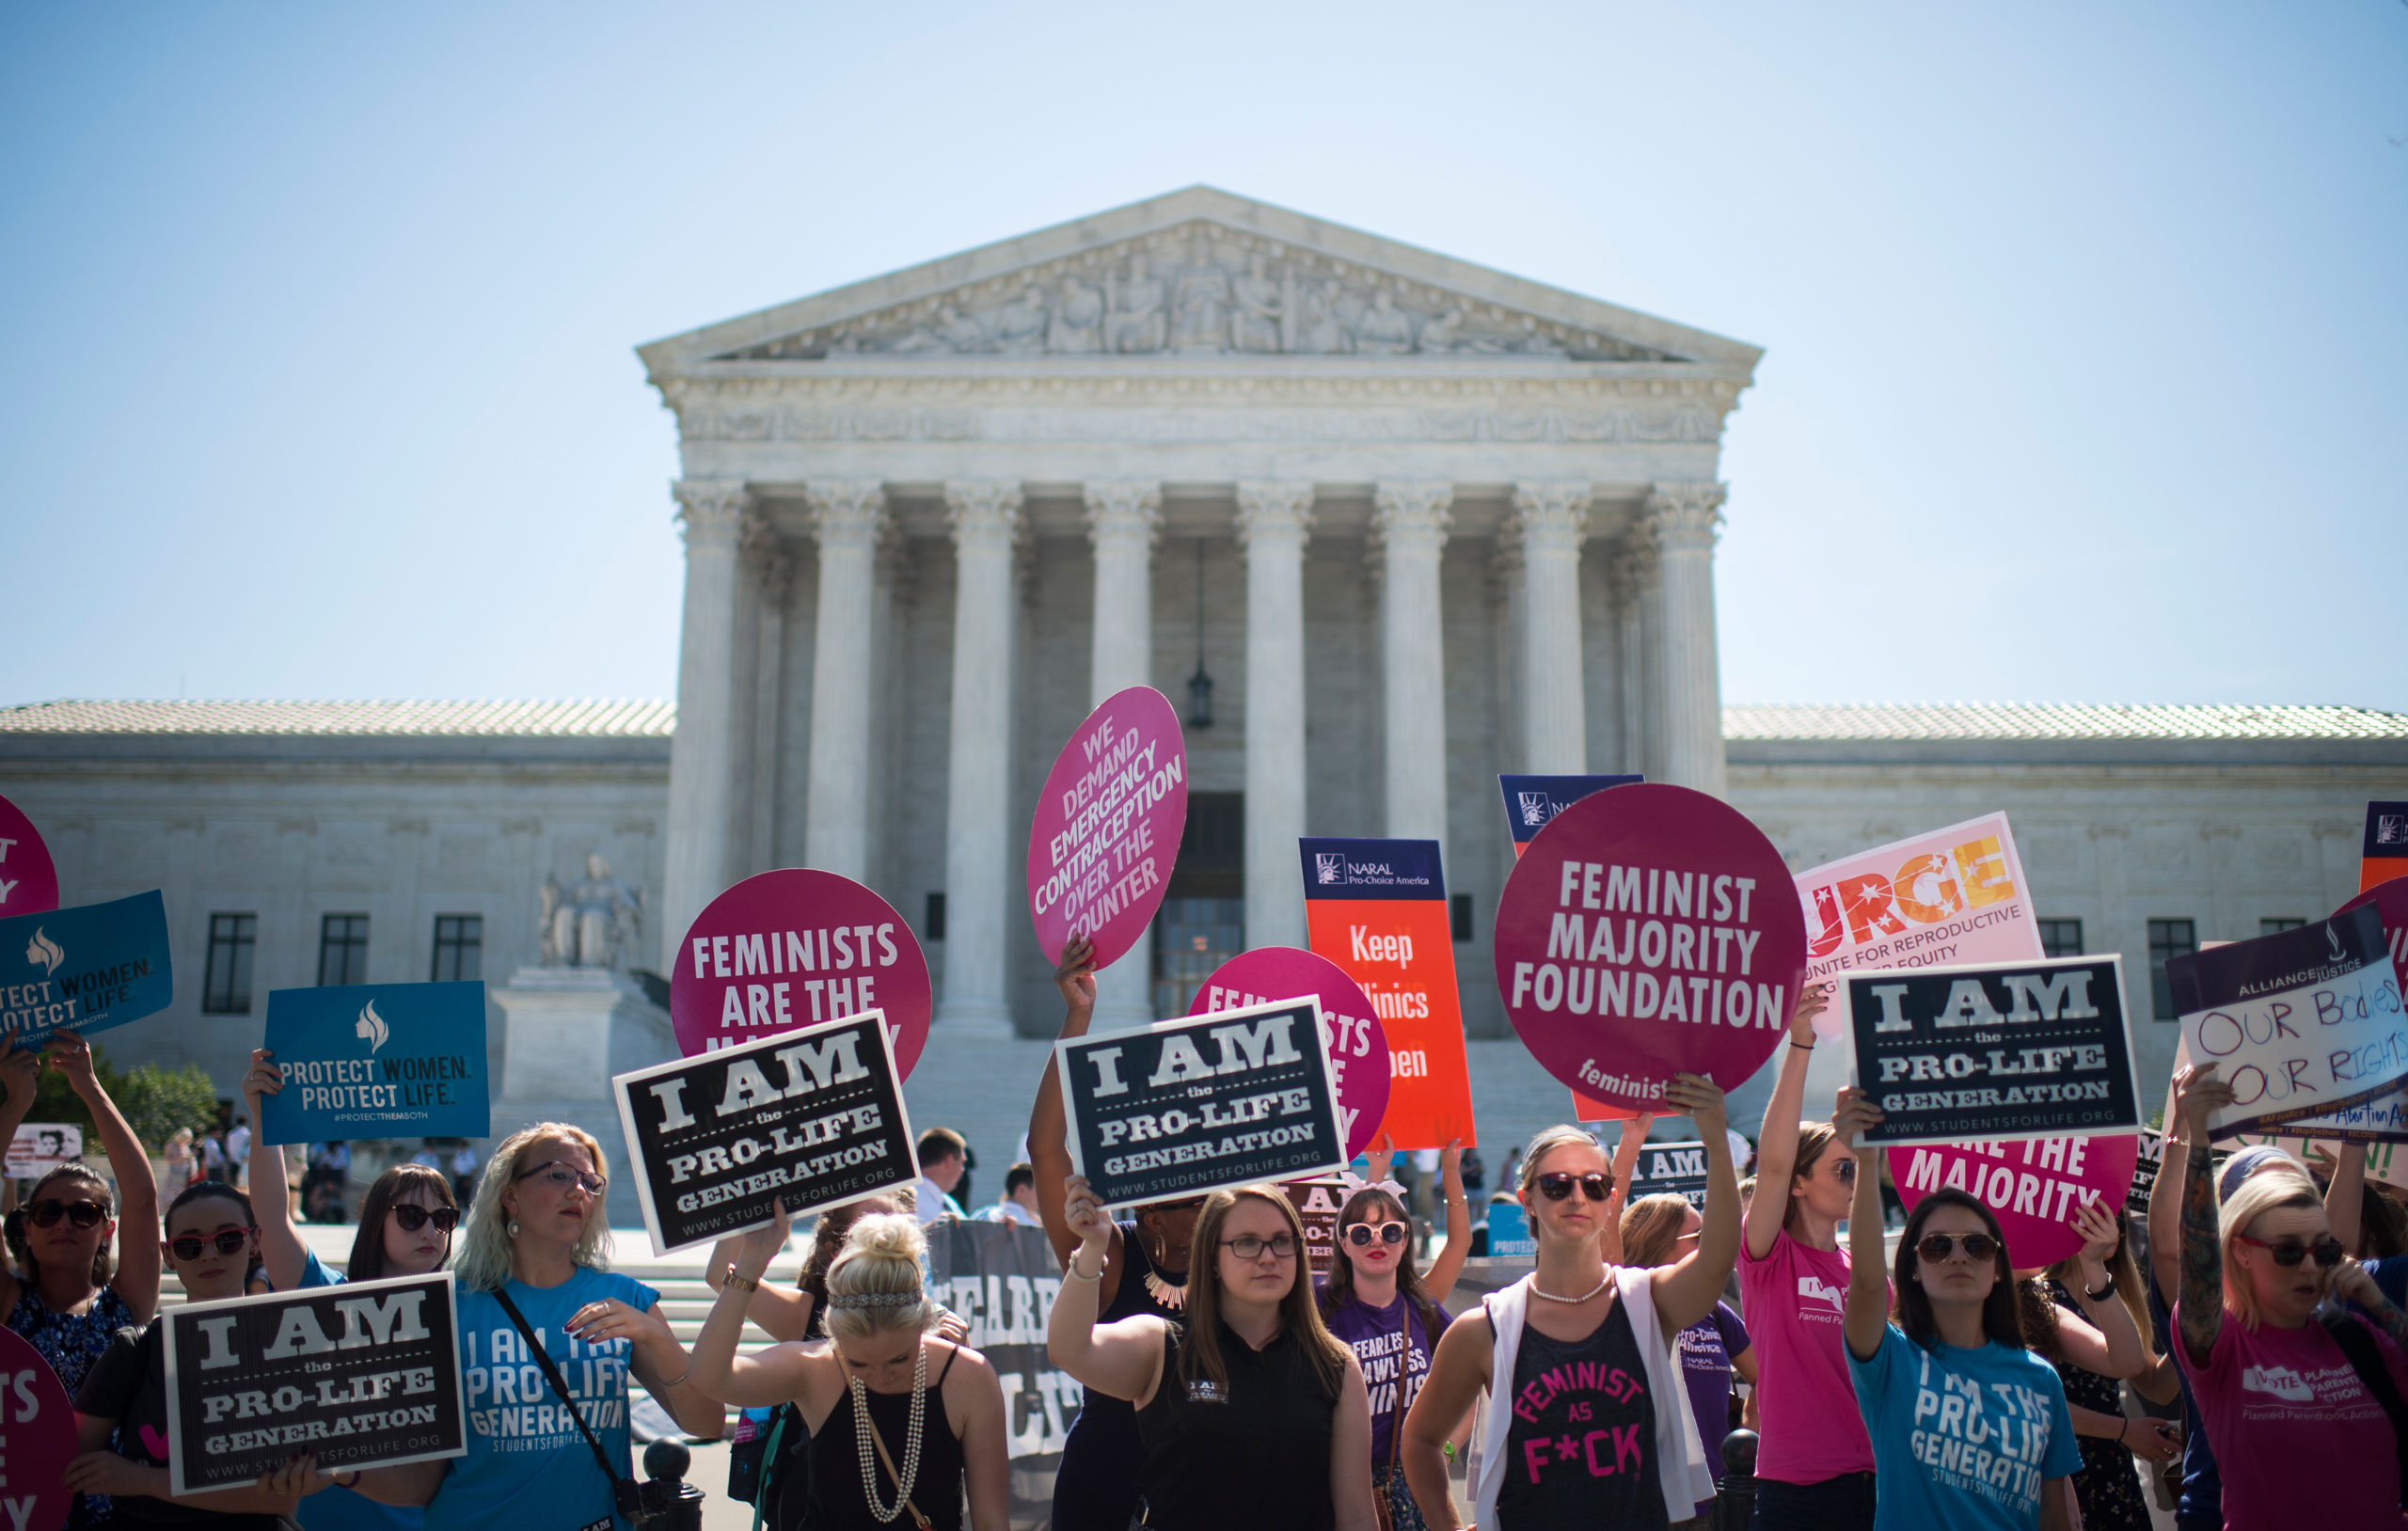 Pro-choice and pro-life demonstrators rally outside of the U.S. Supreme Court in Washington on June 20, 2016.